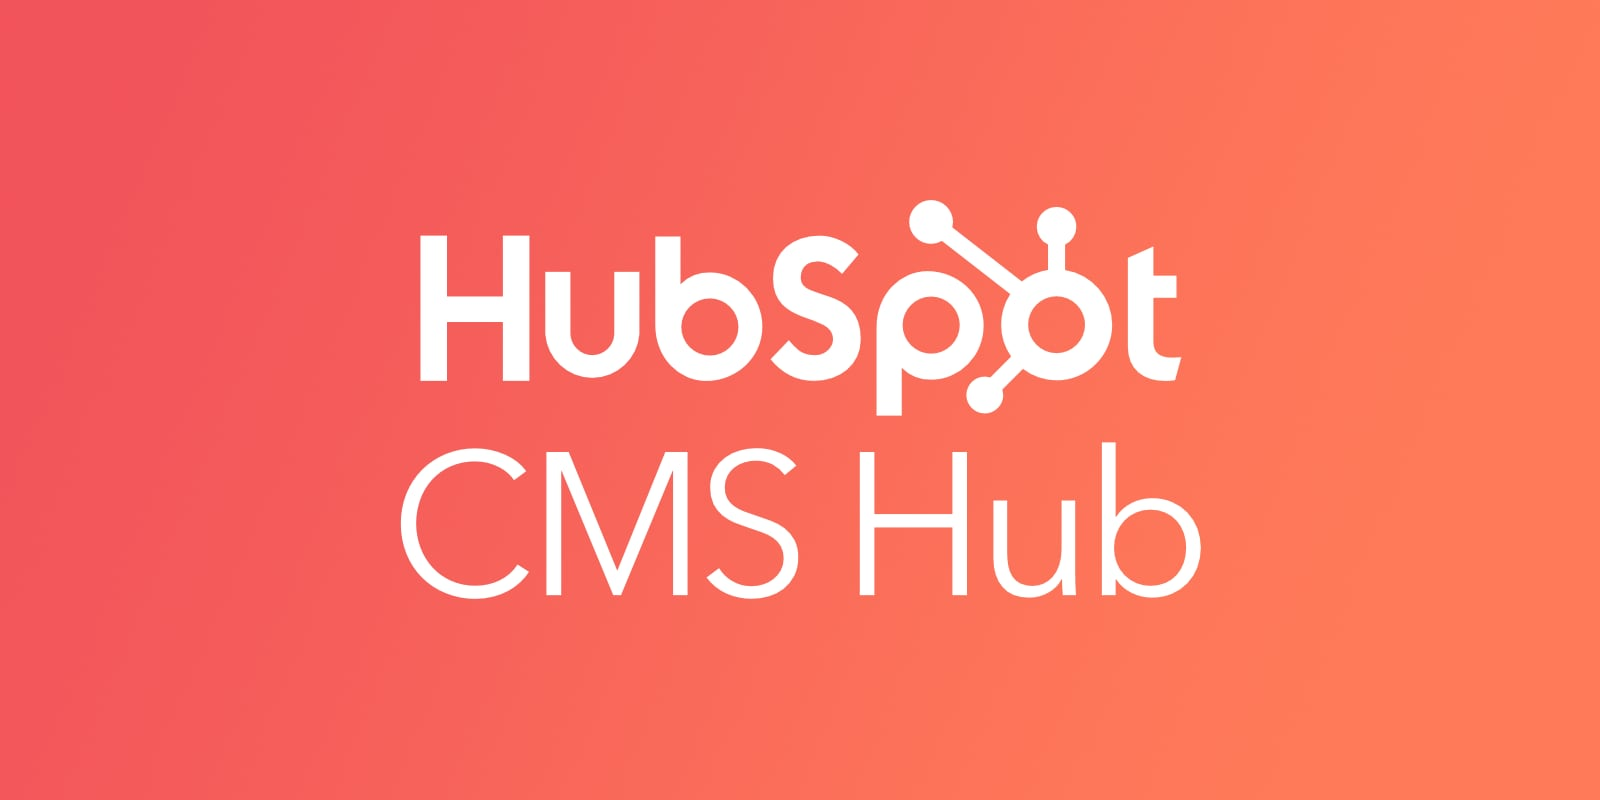 How to Have a HubSpot Menu Load the Default Menu When Transferring to Another Account